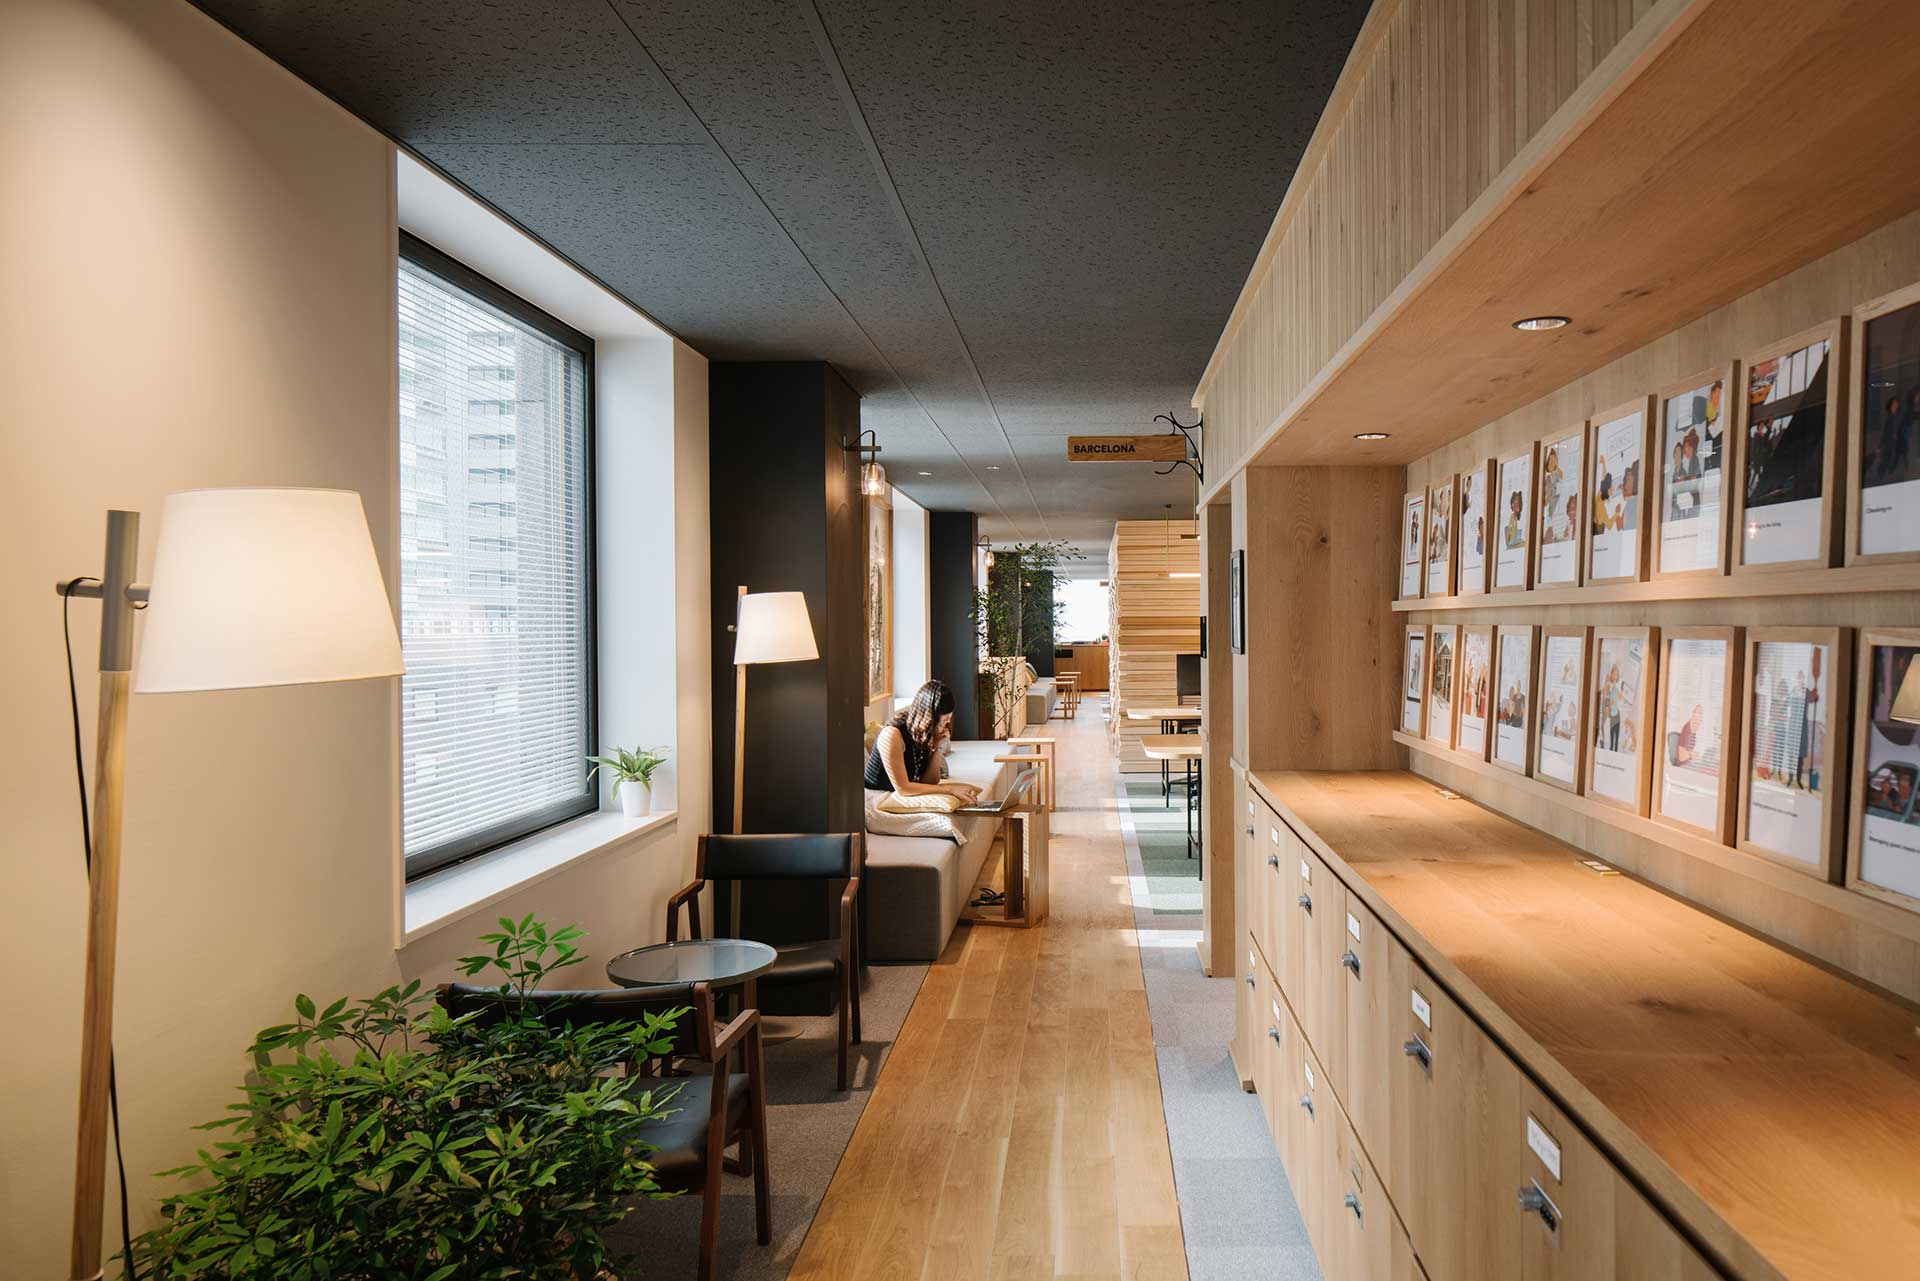 A narrow, well lit hallway with plants and light wood filing cabinets lining the walls.